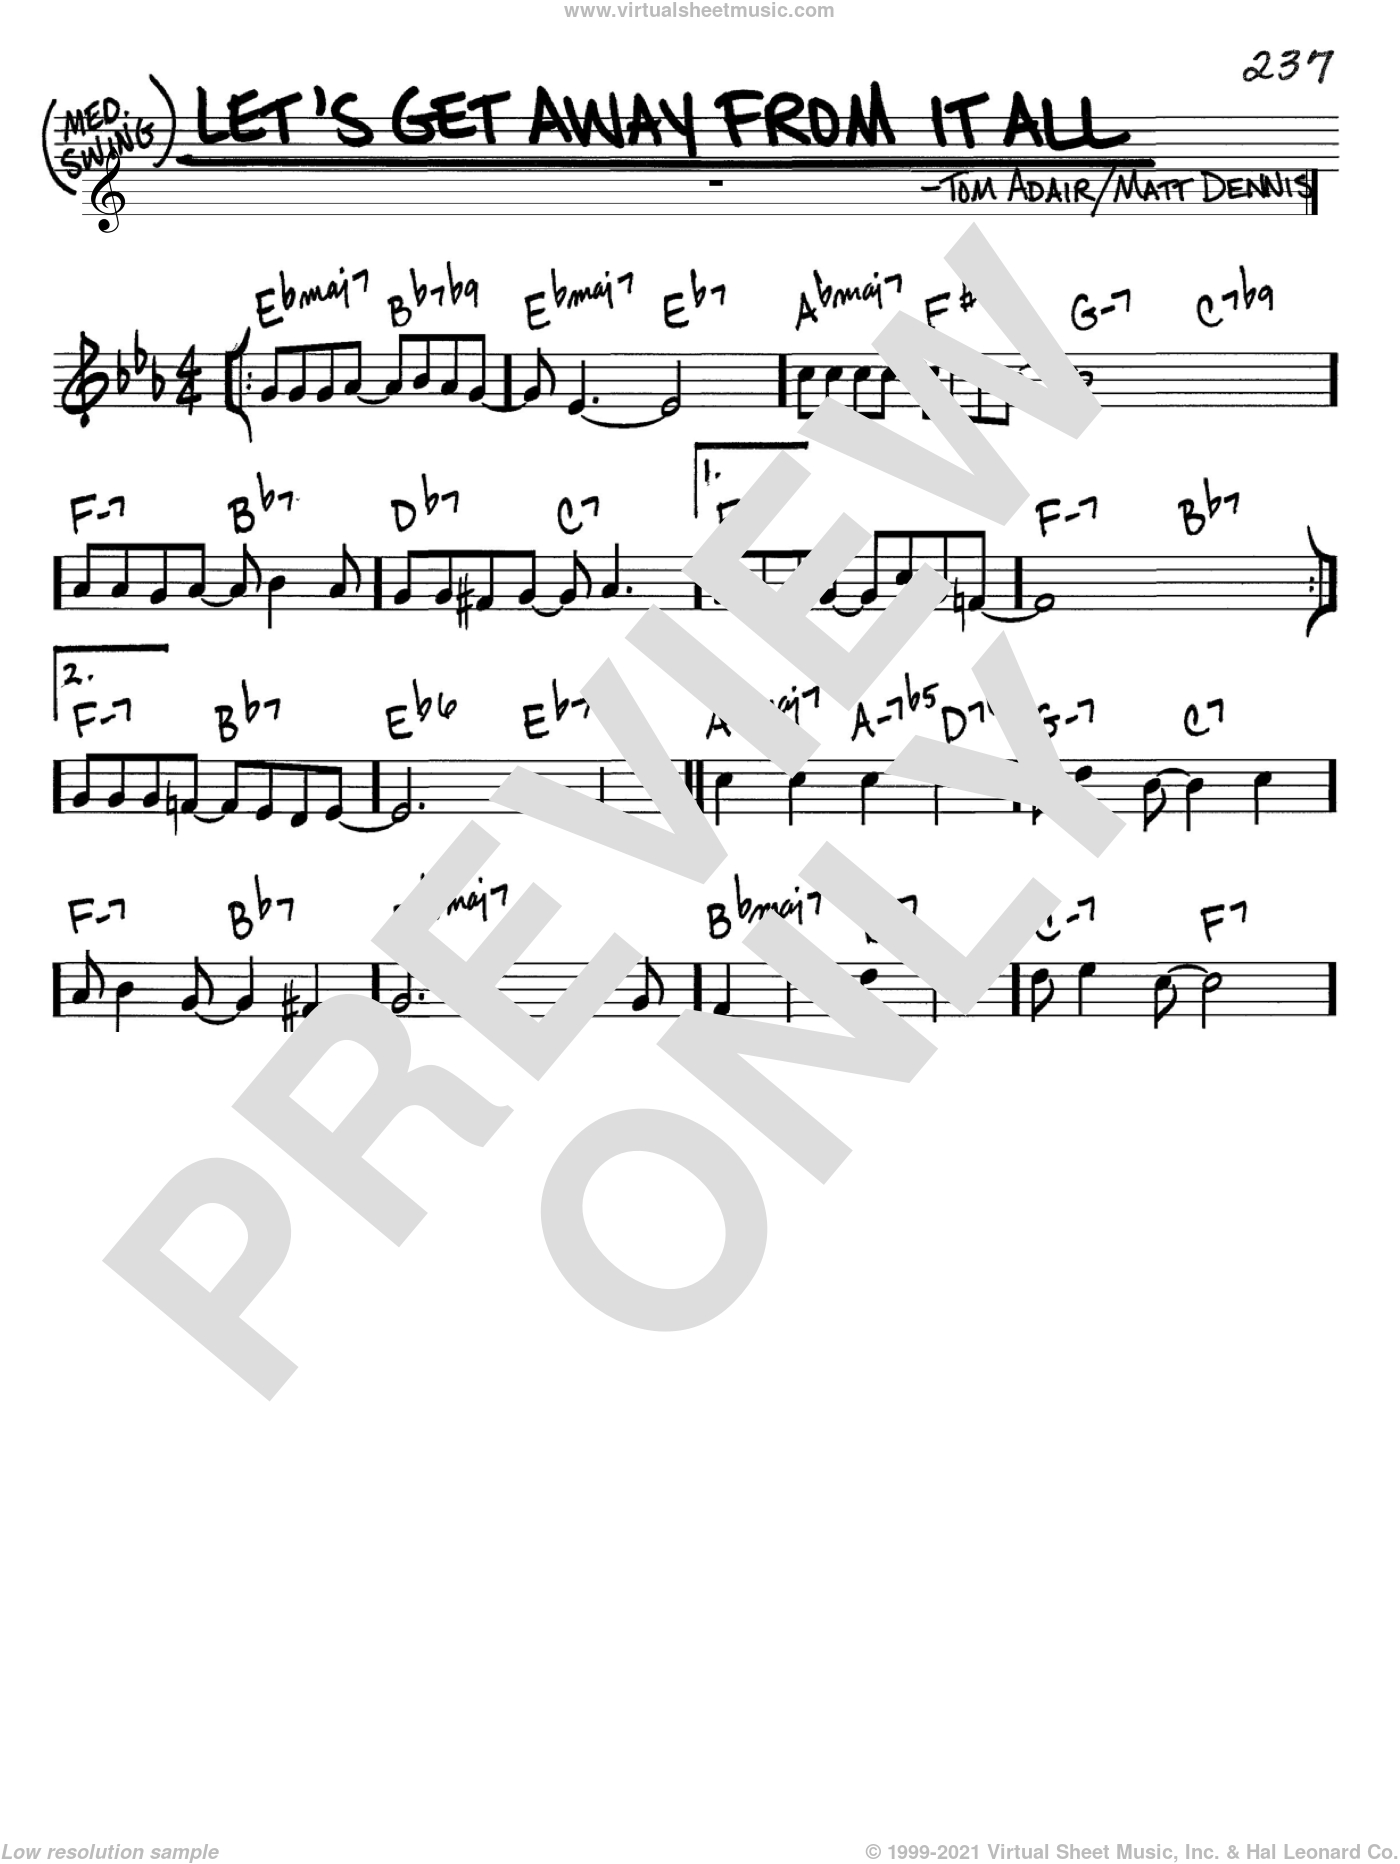 Let's Get Away From It All sheet music for voice and other instruments (C) by Tom Adair